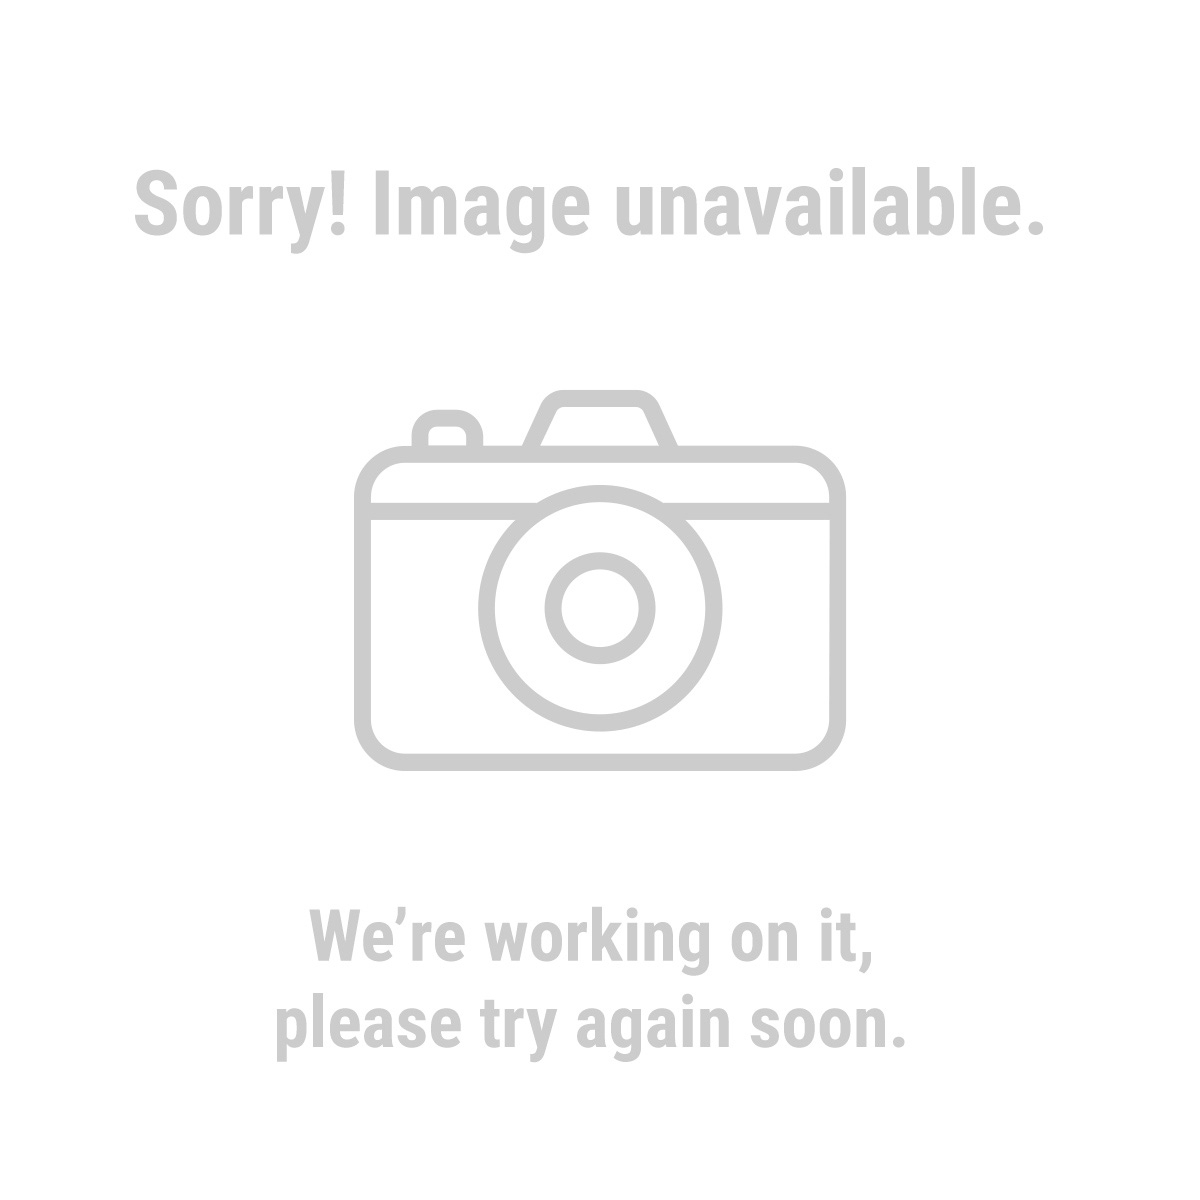 5 Piece 3 in. Thin Cut-off Wheels for Metal